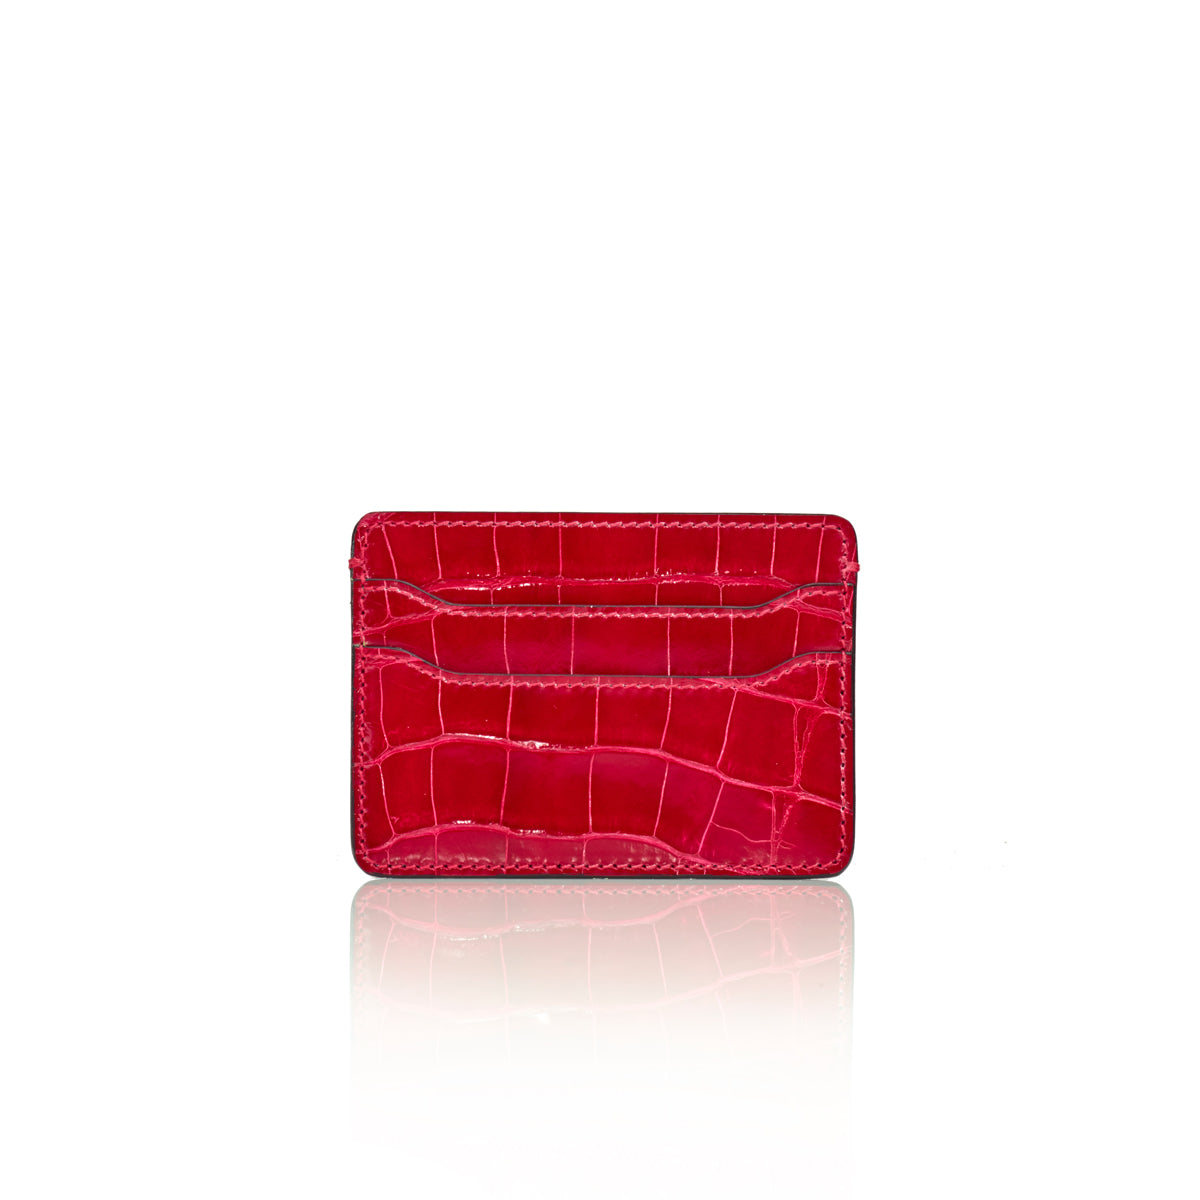 Credit Card Case - Cerise Alligator